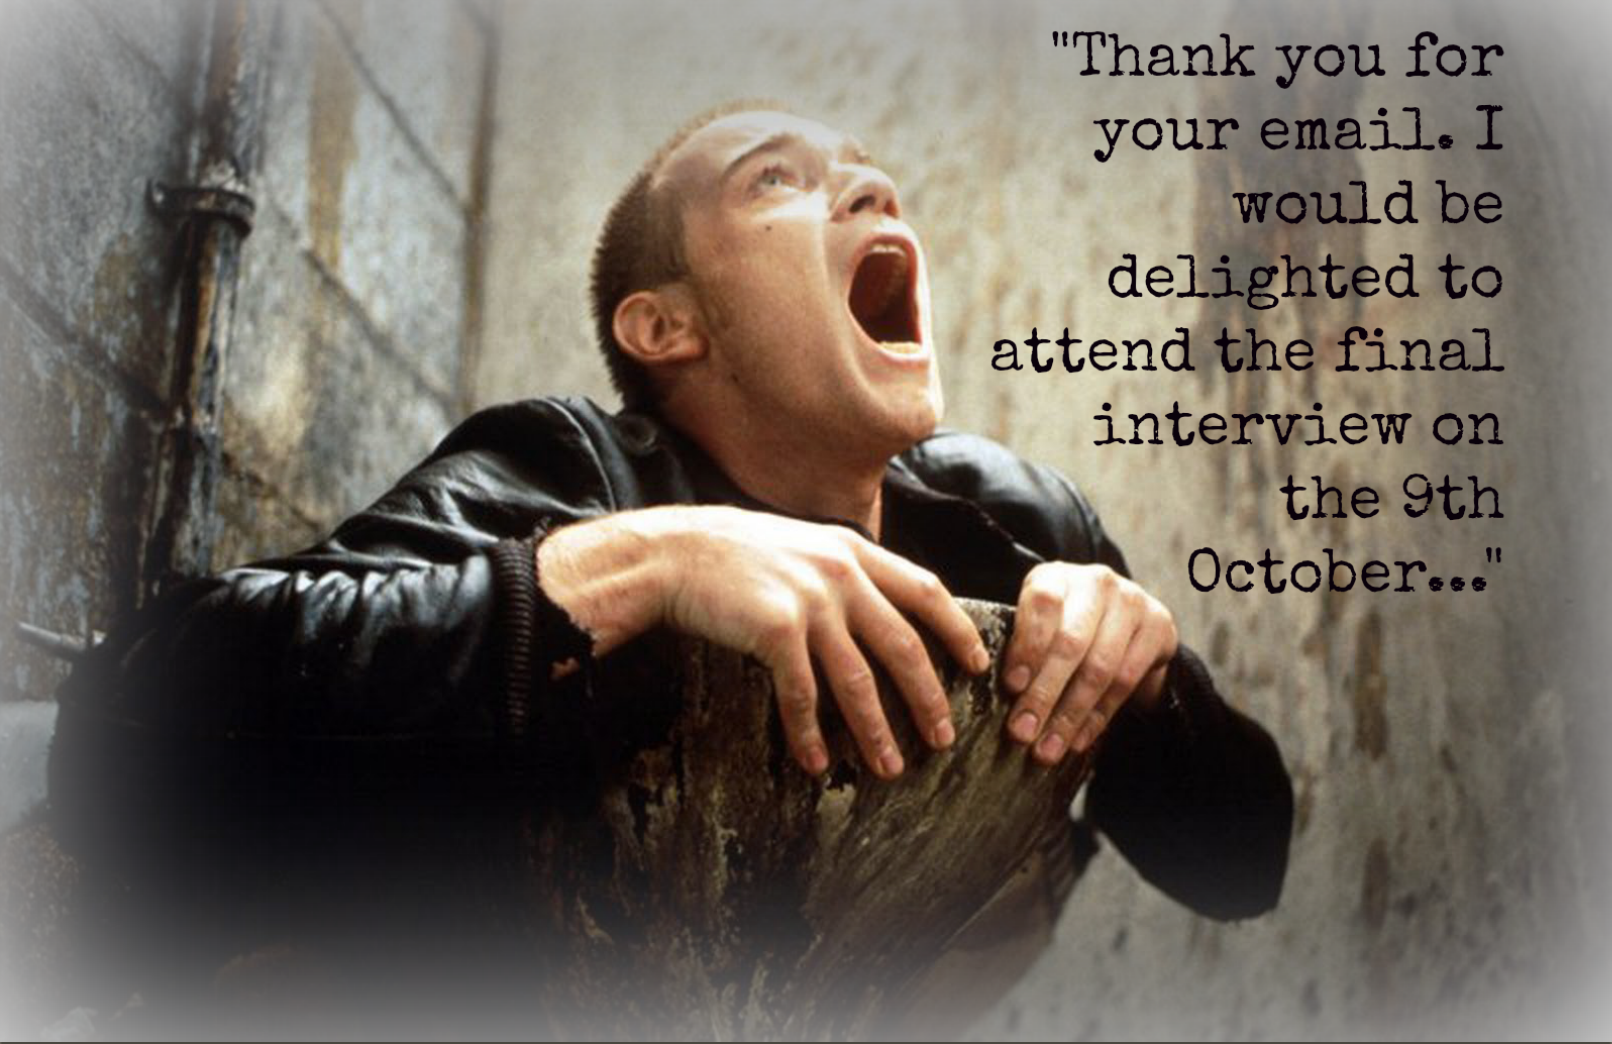 How it feels to get a final interview: Trainspotting style